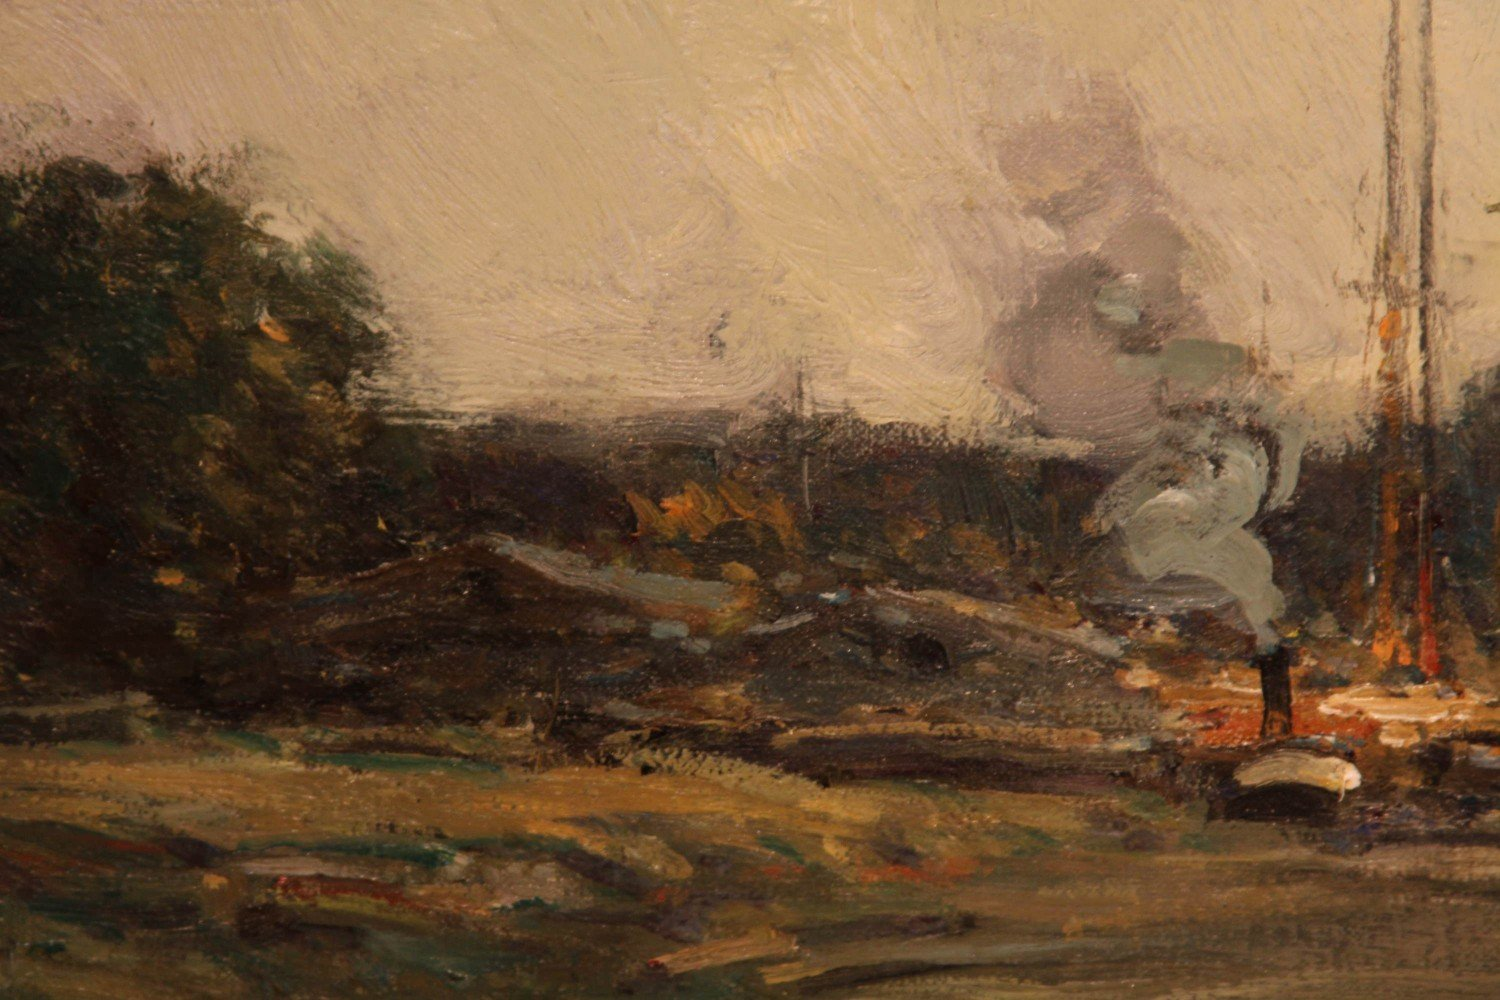 Landscape Oil on Canvas Painting: